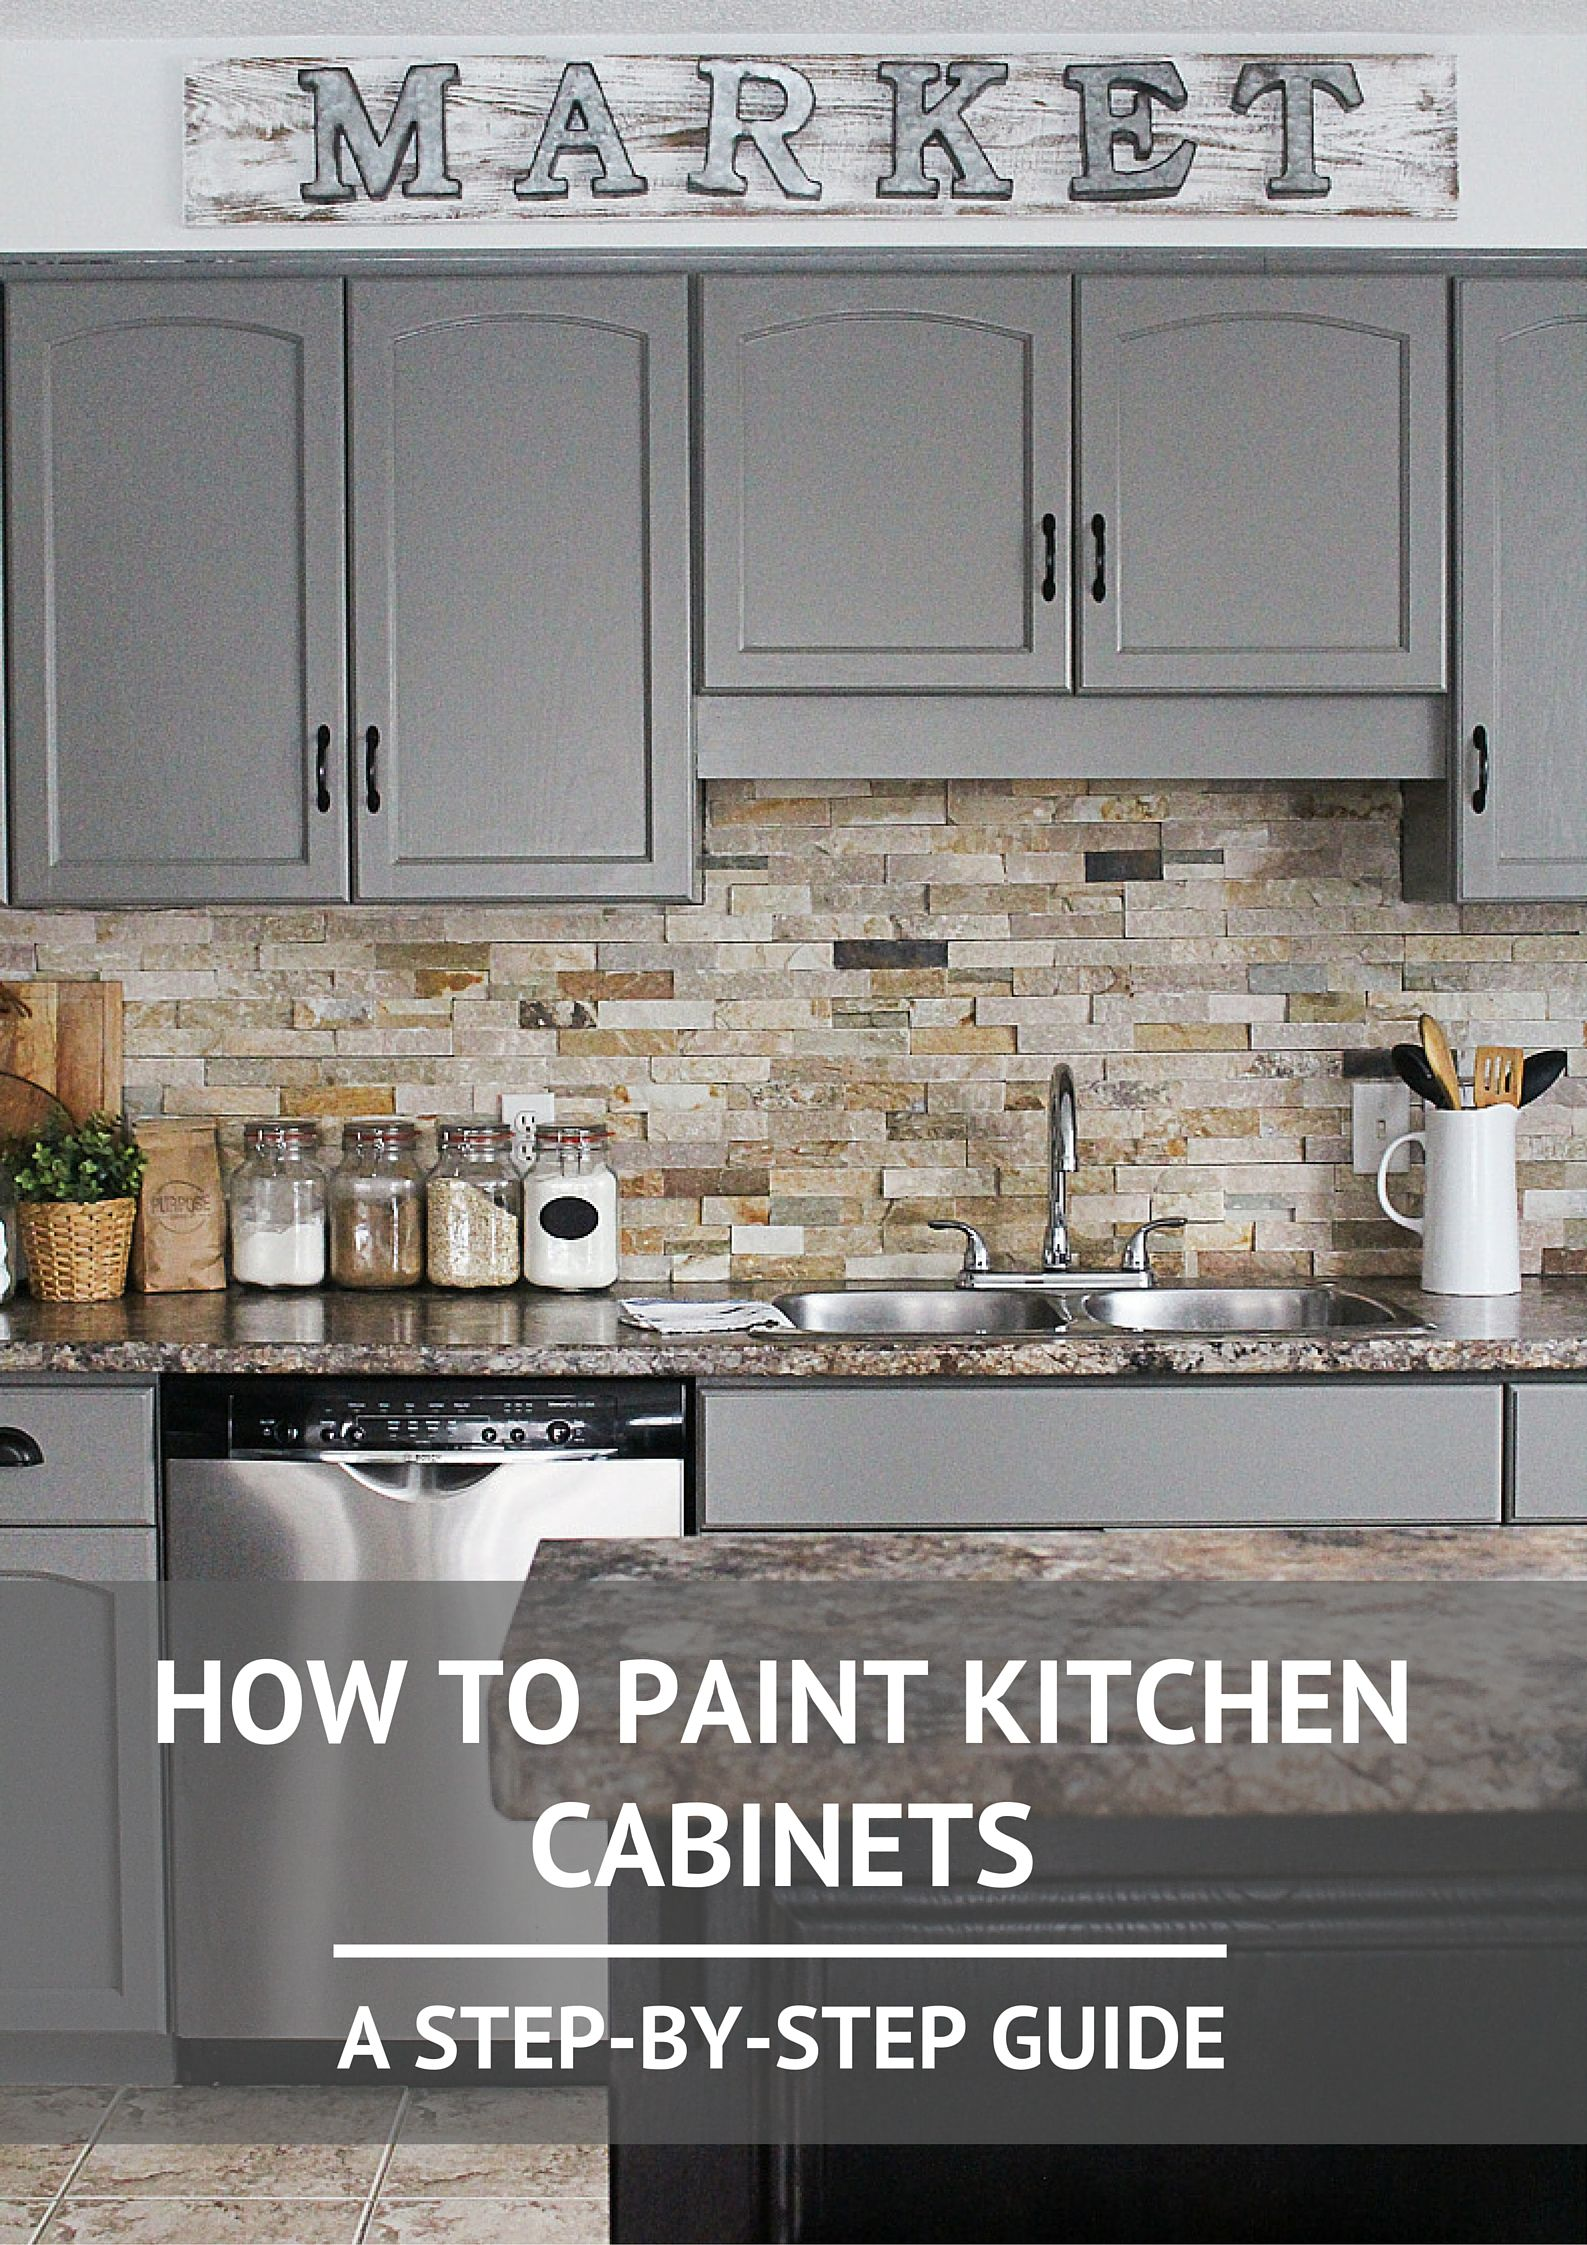 can i paint my kitchen cabinets inexpensive how to home pinterest painting so guys here it is at last know some of you have been poking me share the whole painted process